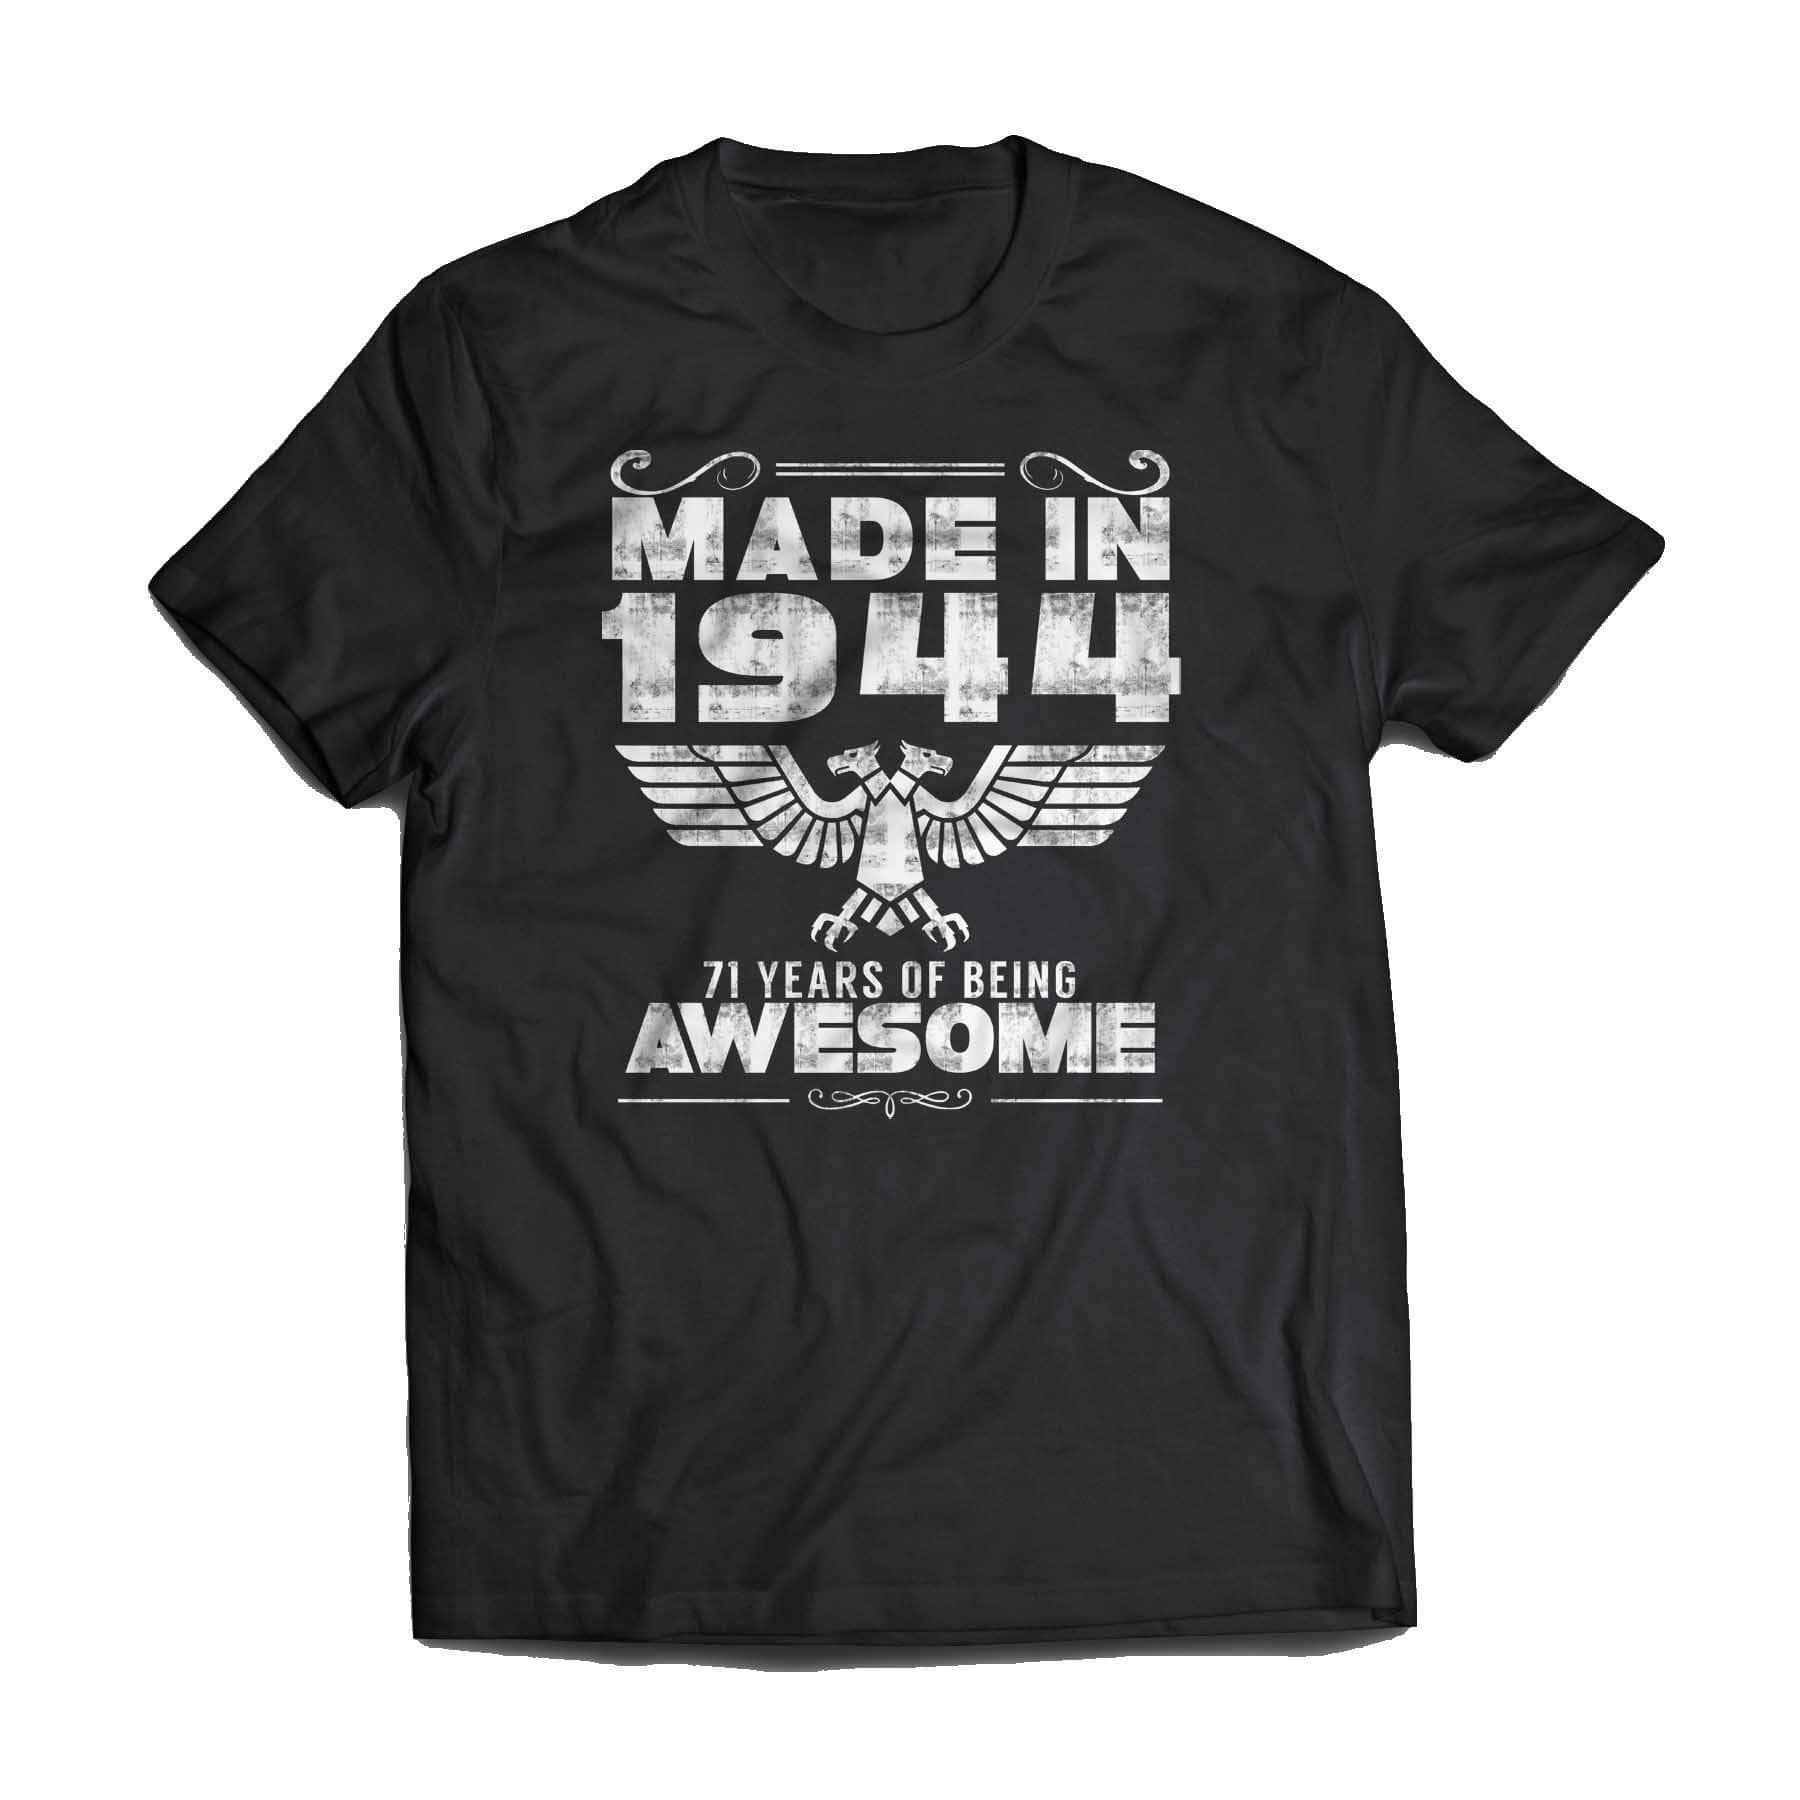 Awesome Since 1944